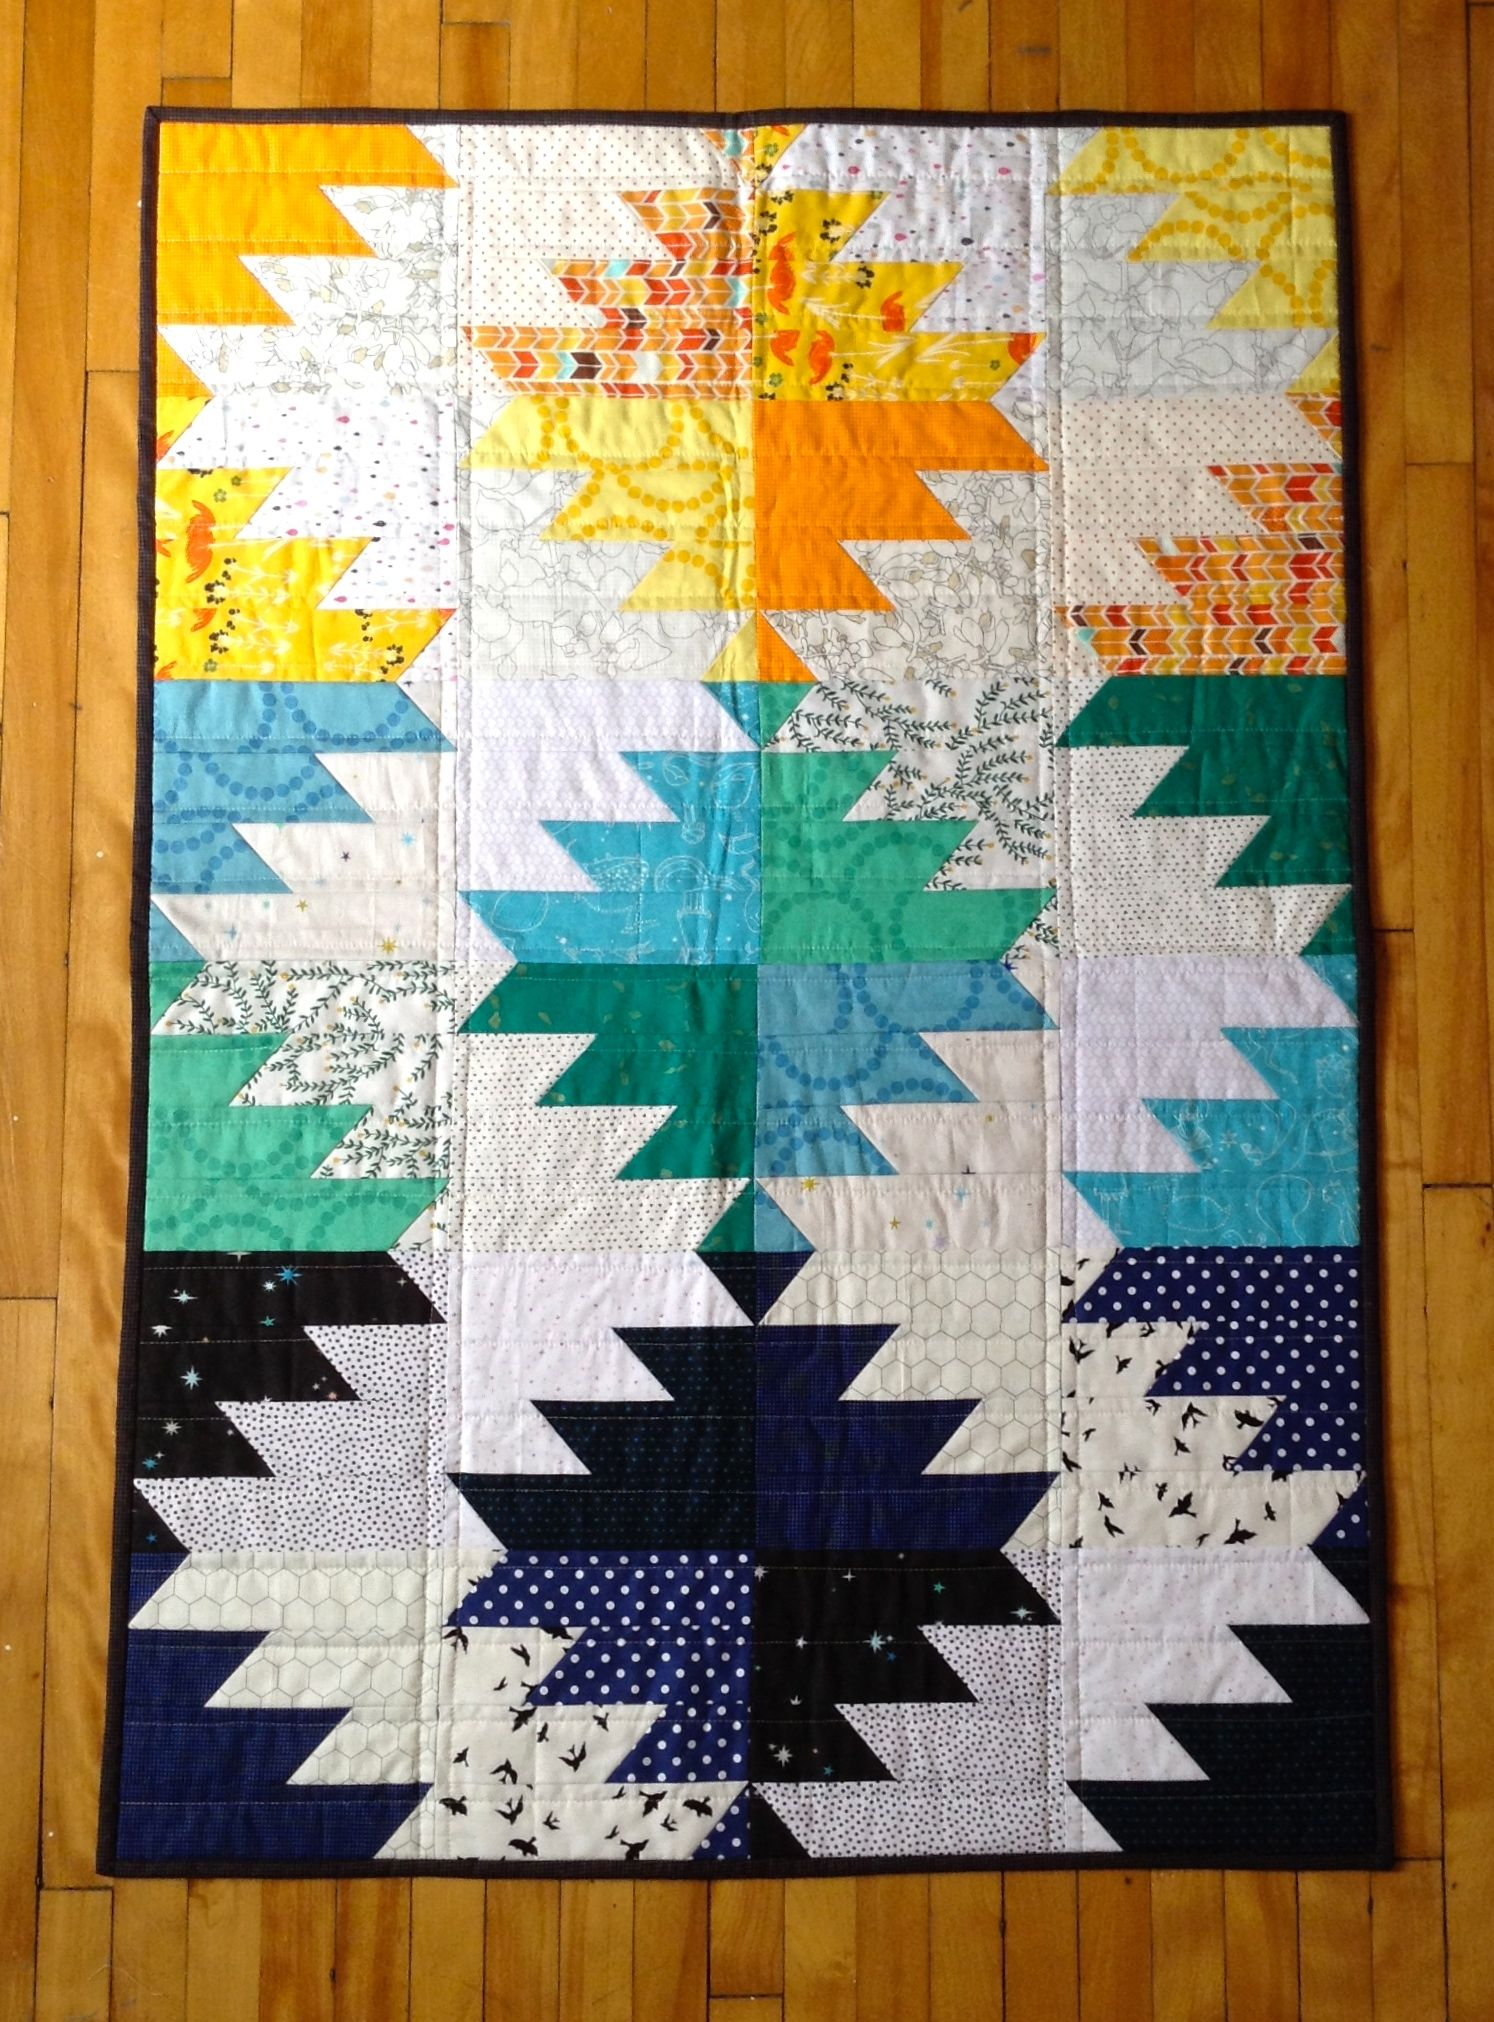 desert mountains alternate patternperfect  quilted  pinterest  - delectable desert mountains quilt wendyworld  maybe for guest bedroom